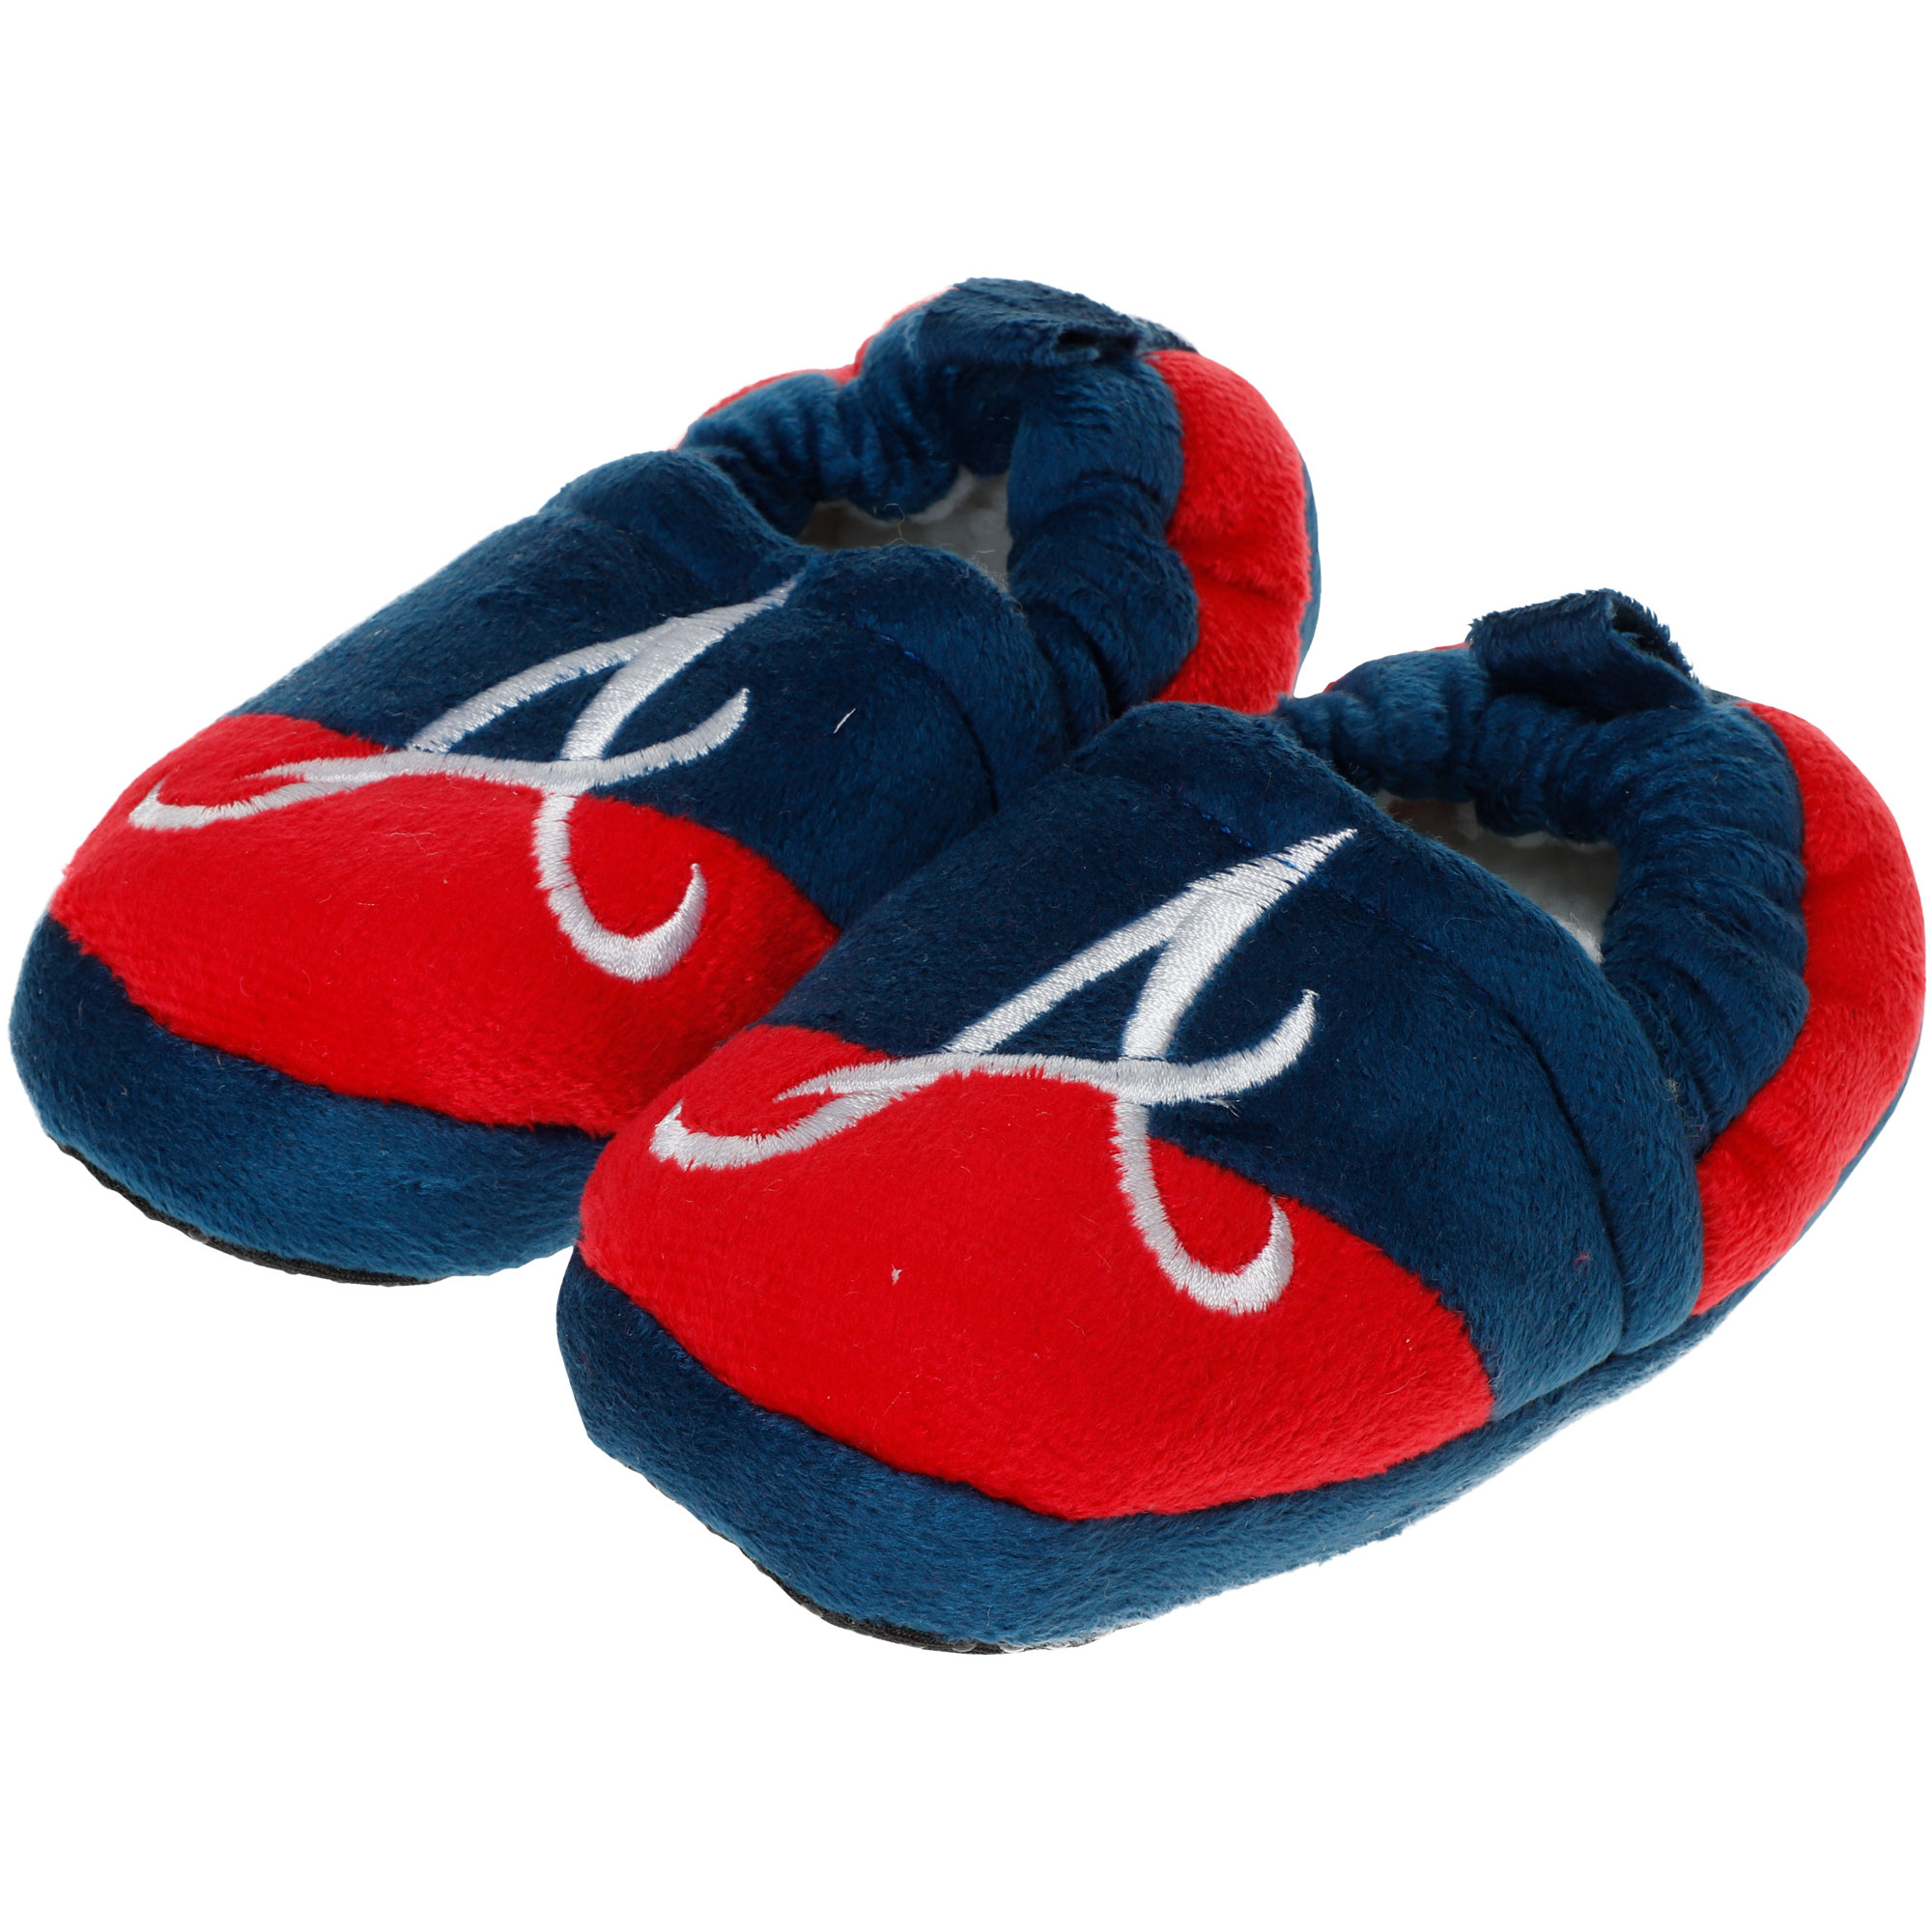 Atlanta Braves Toddler Colorblock Slide Slippers